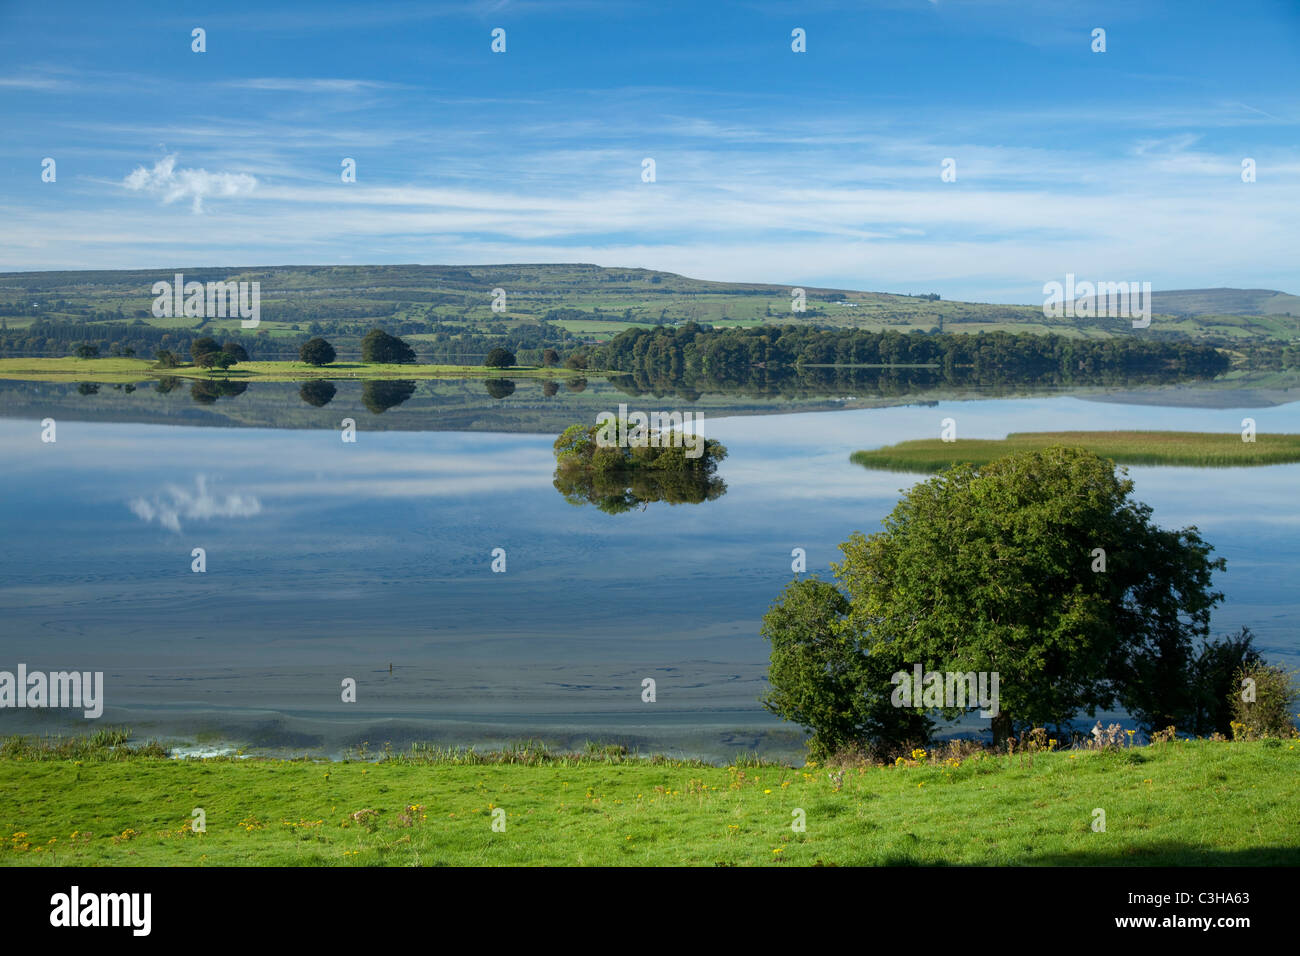 Vistas de Lough Arrow, condado de Sligo, Irlanda. Imagen De Stock